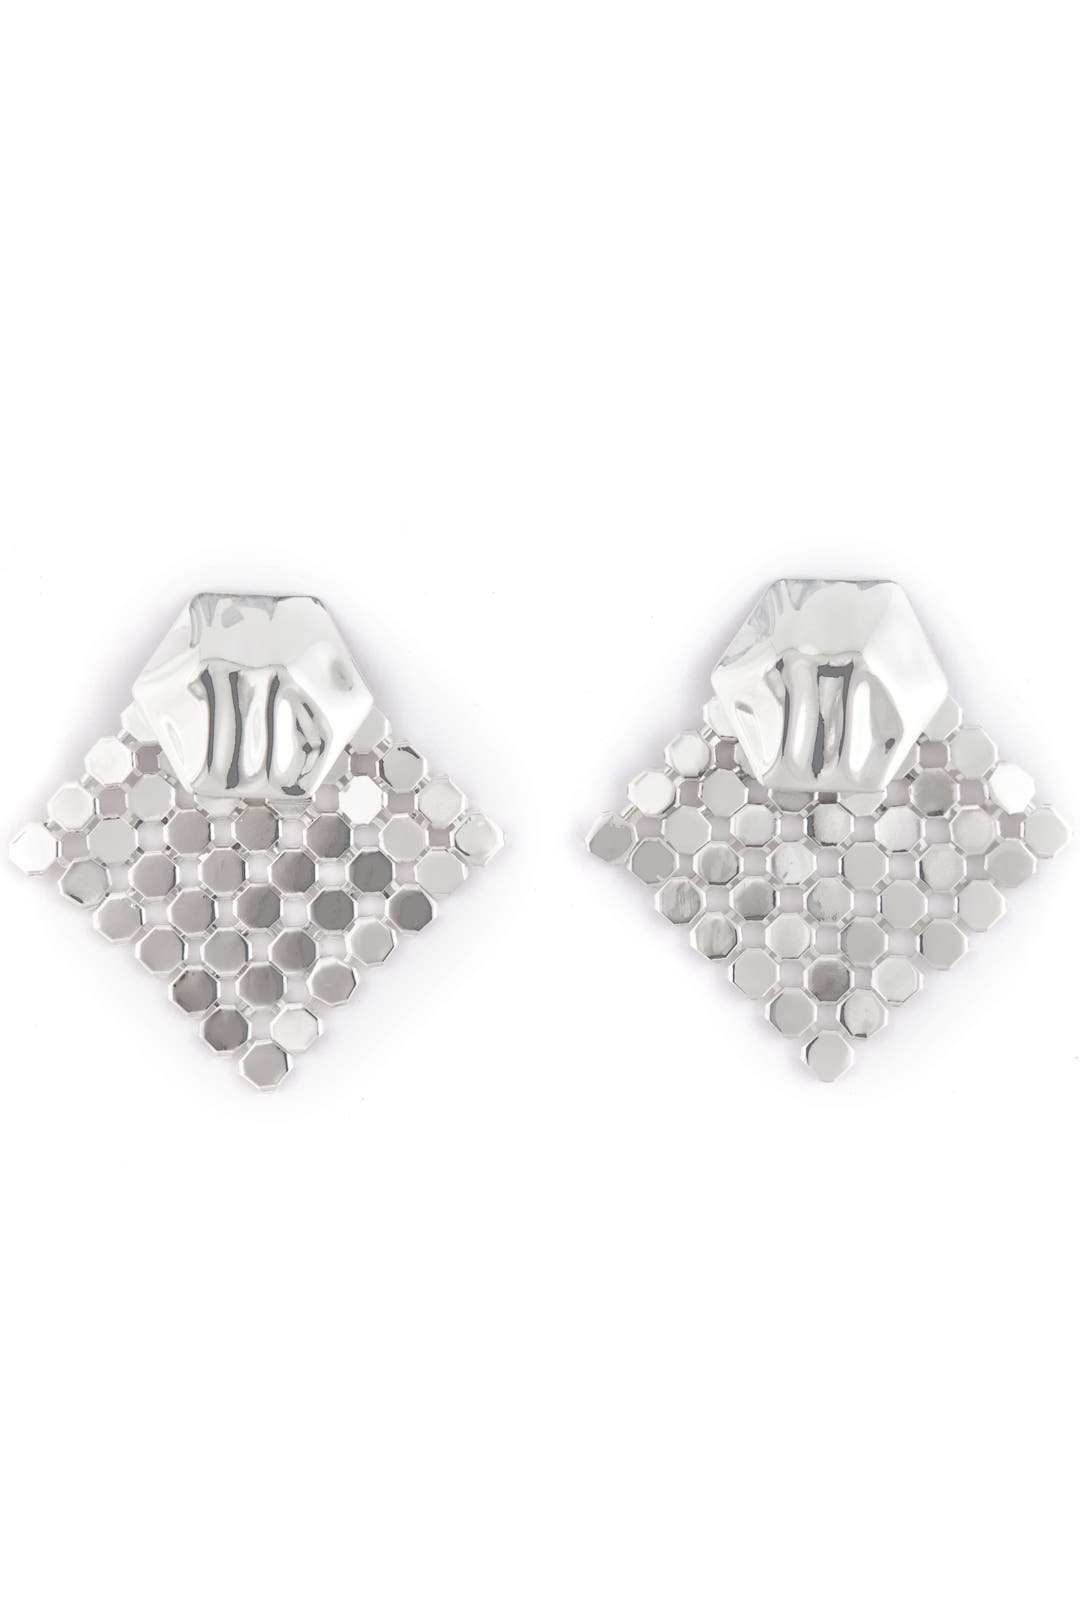 Diamond Disco Earrings by Tuleste Market